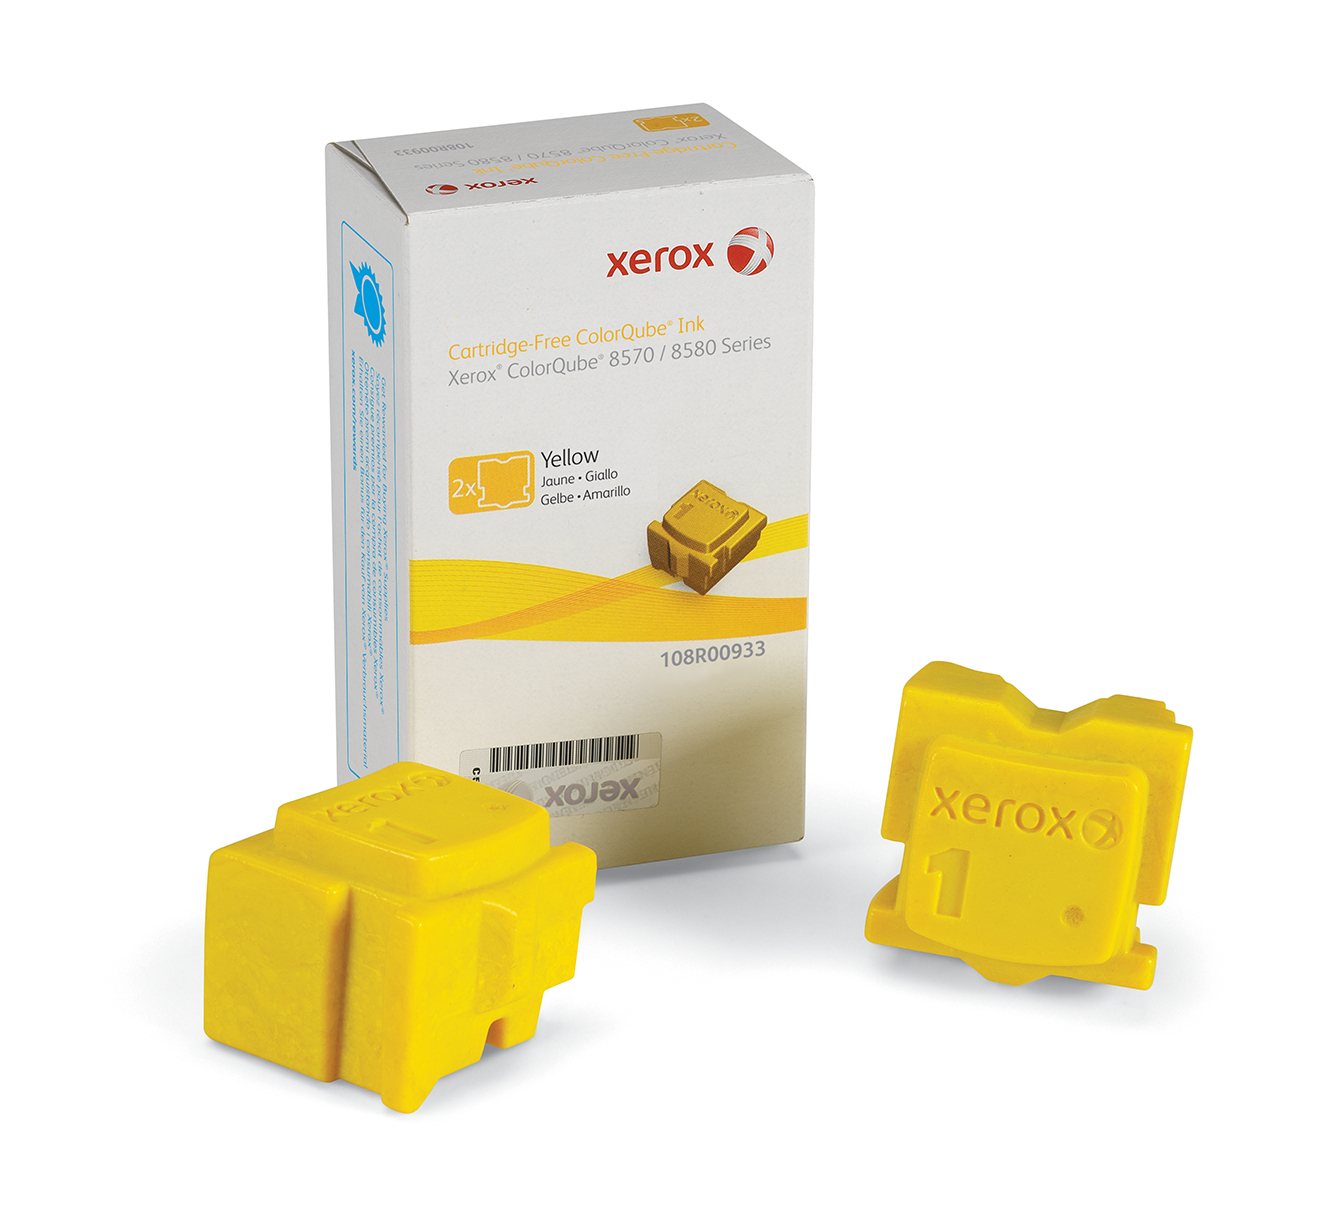 Xer108r00933   Xerox Colorqube 8570 Yellow    2 Sticks,4400 Pages                                          - UF01